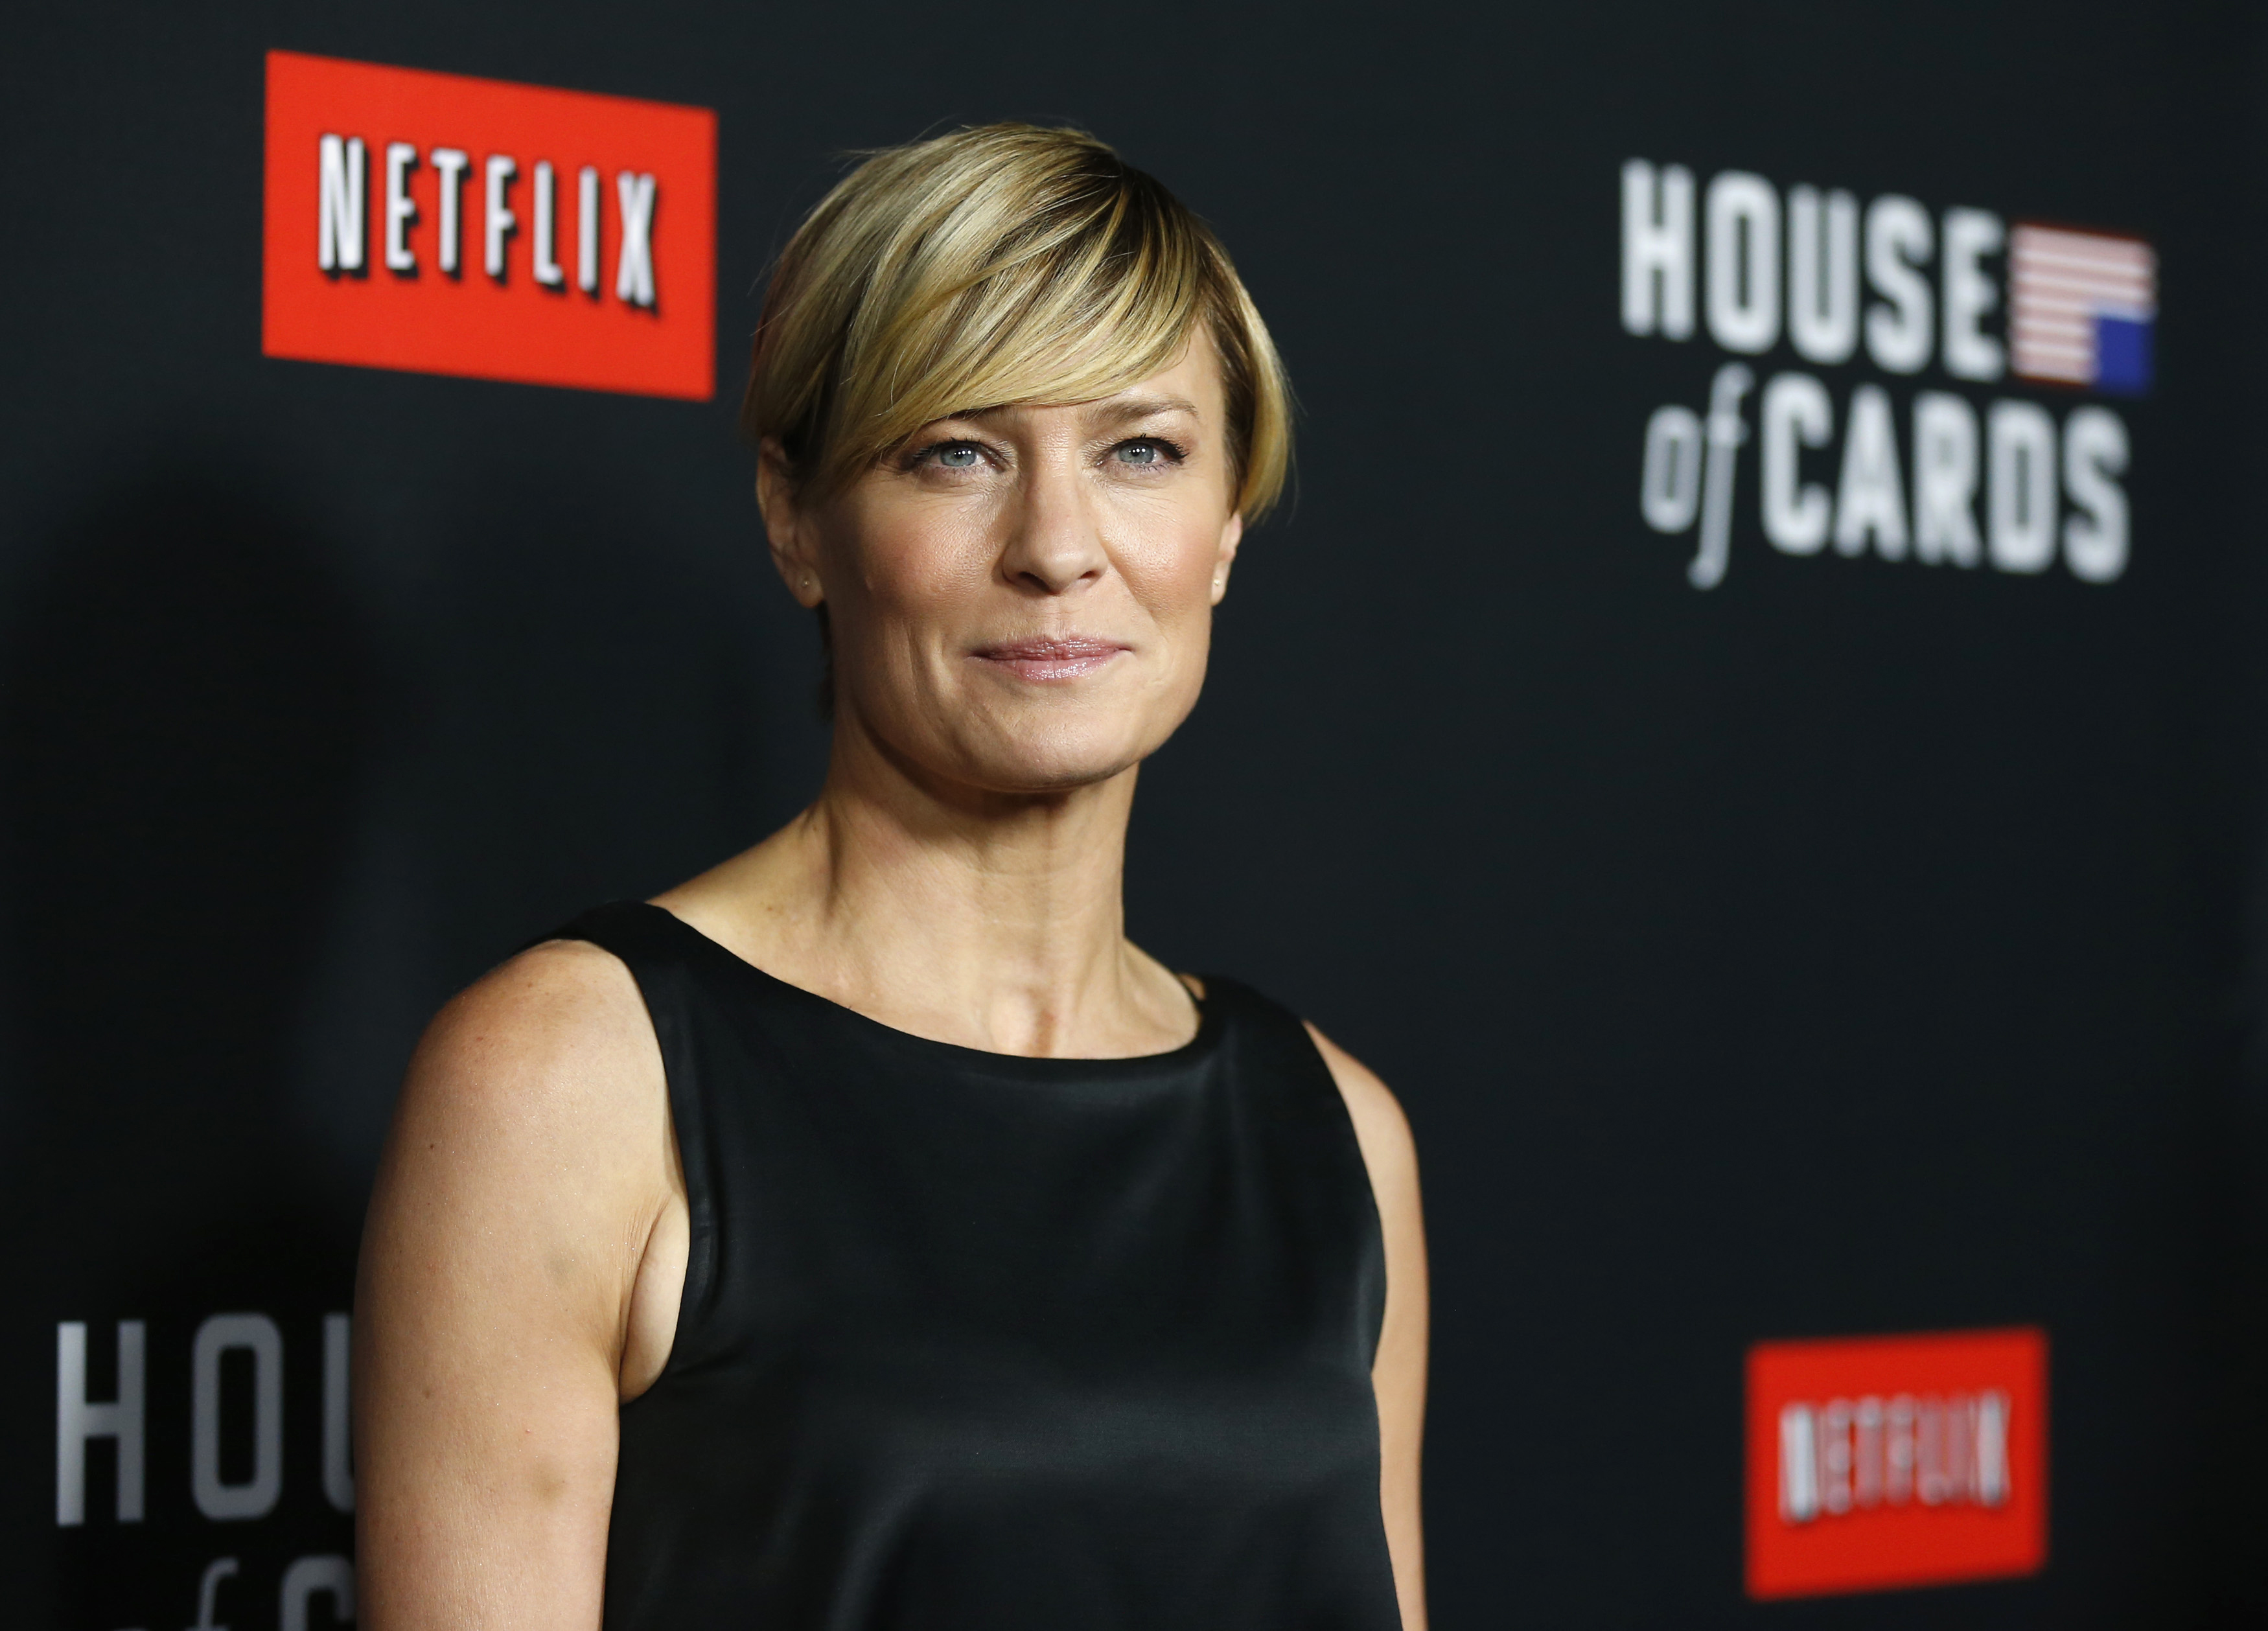 How Netflix and House of Cards will change Cuba